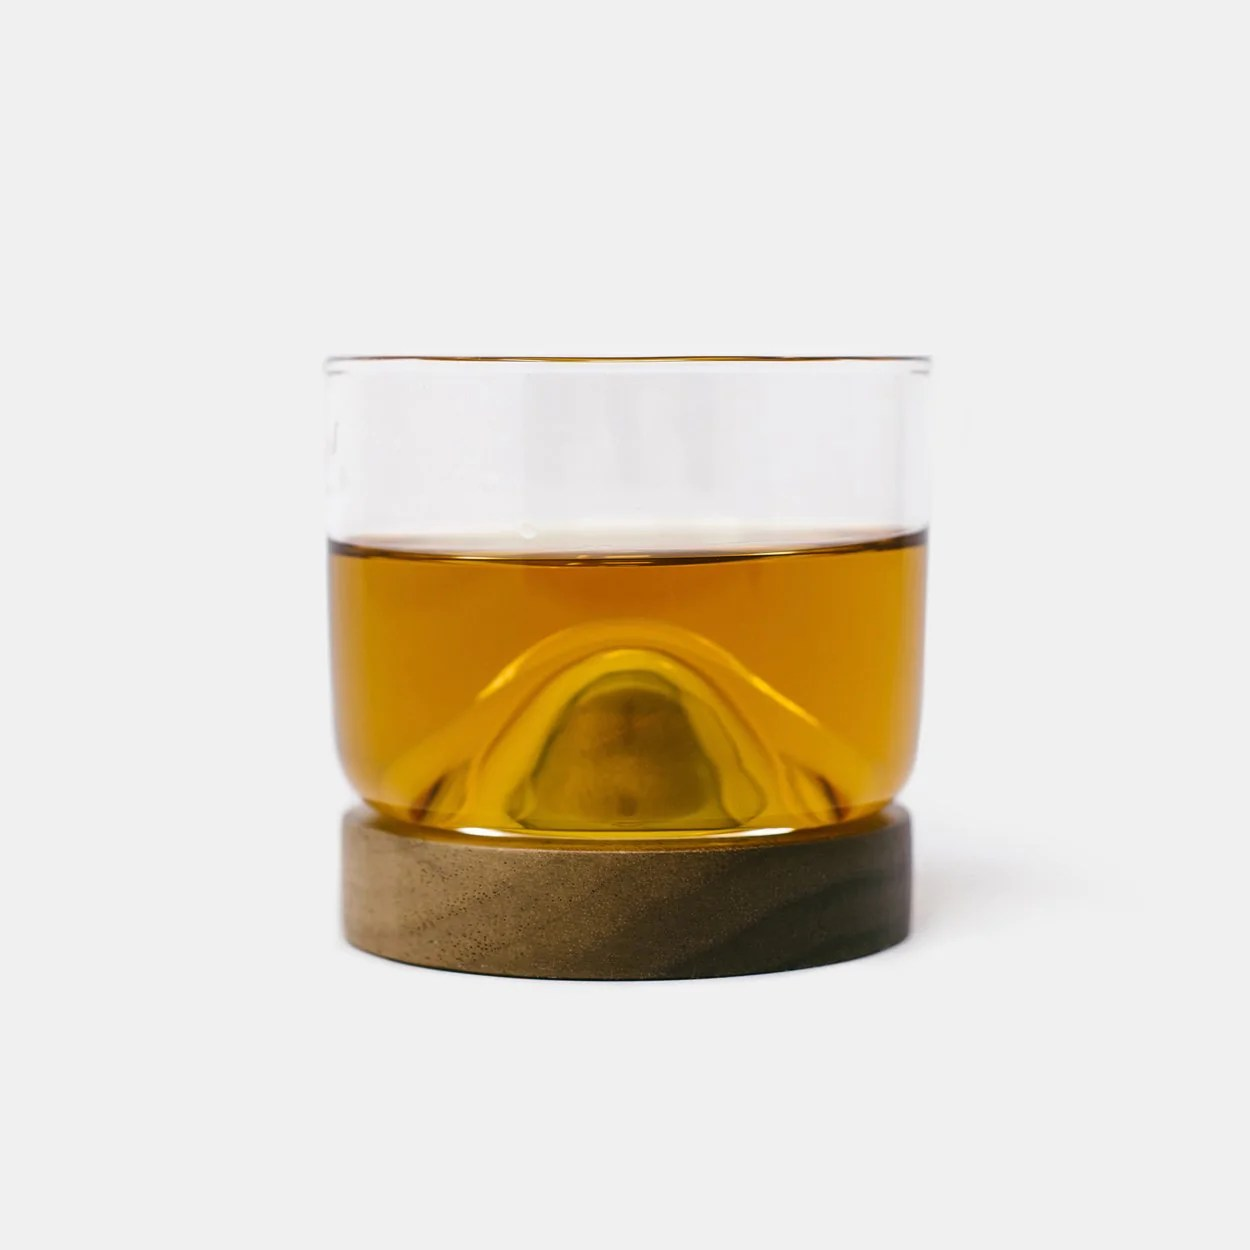 Wisky Glas Japanese Whiskey Glass With Wooden Base By Cool Material Shop Cool Material